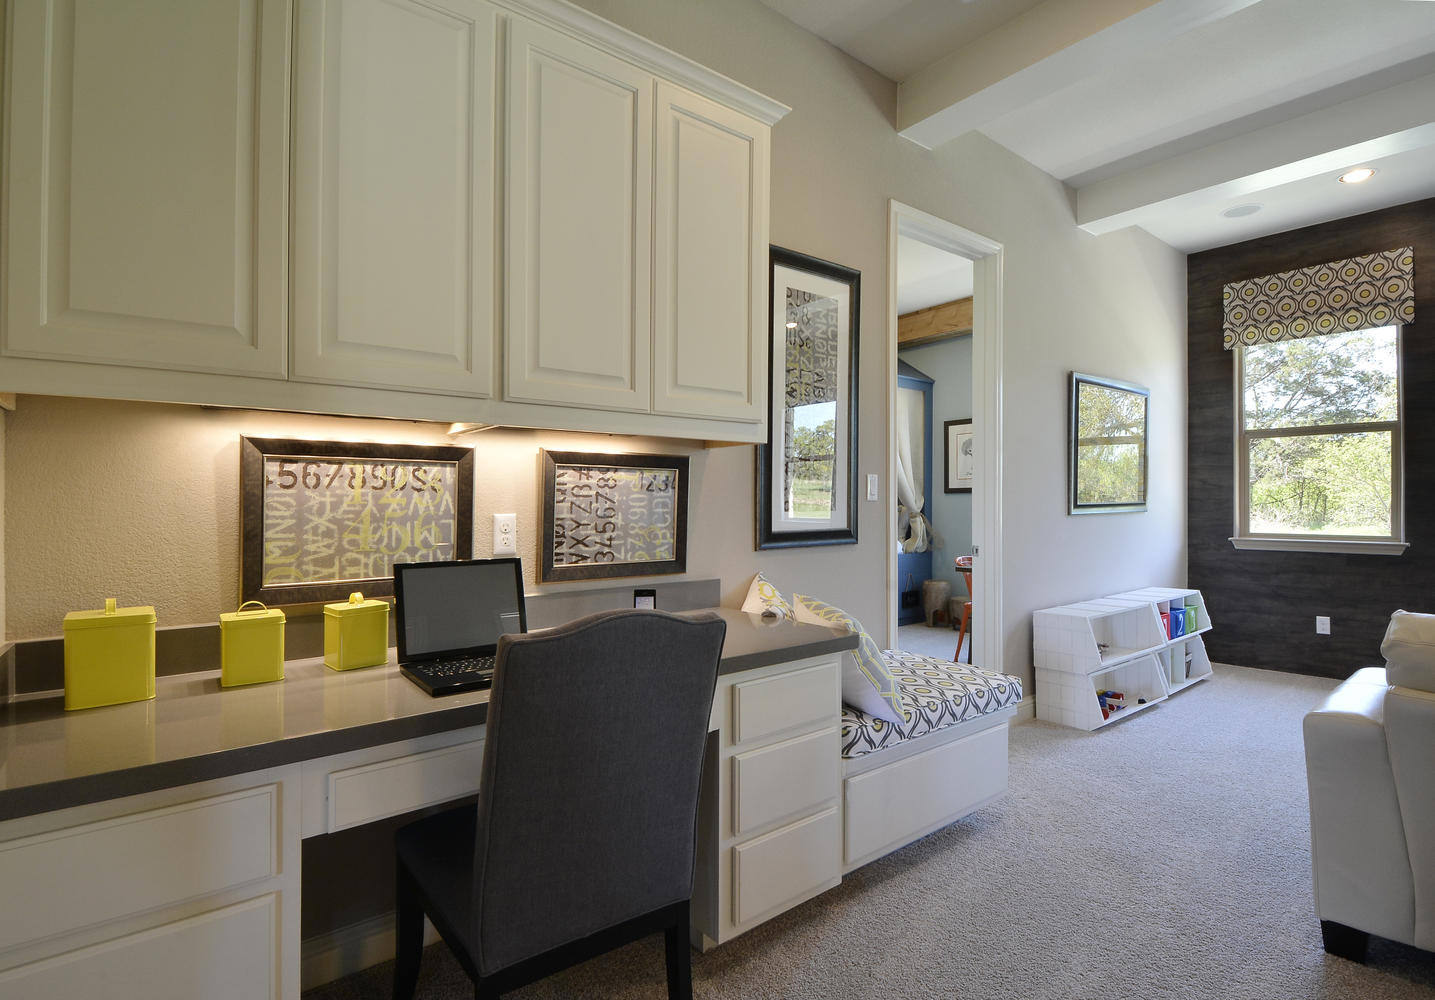 White Kitchen Cabinets - Burrows Cabinets - central Texas ...